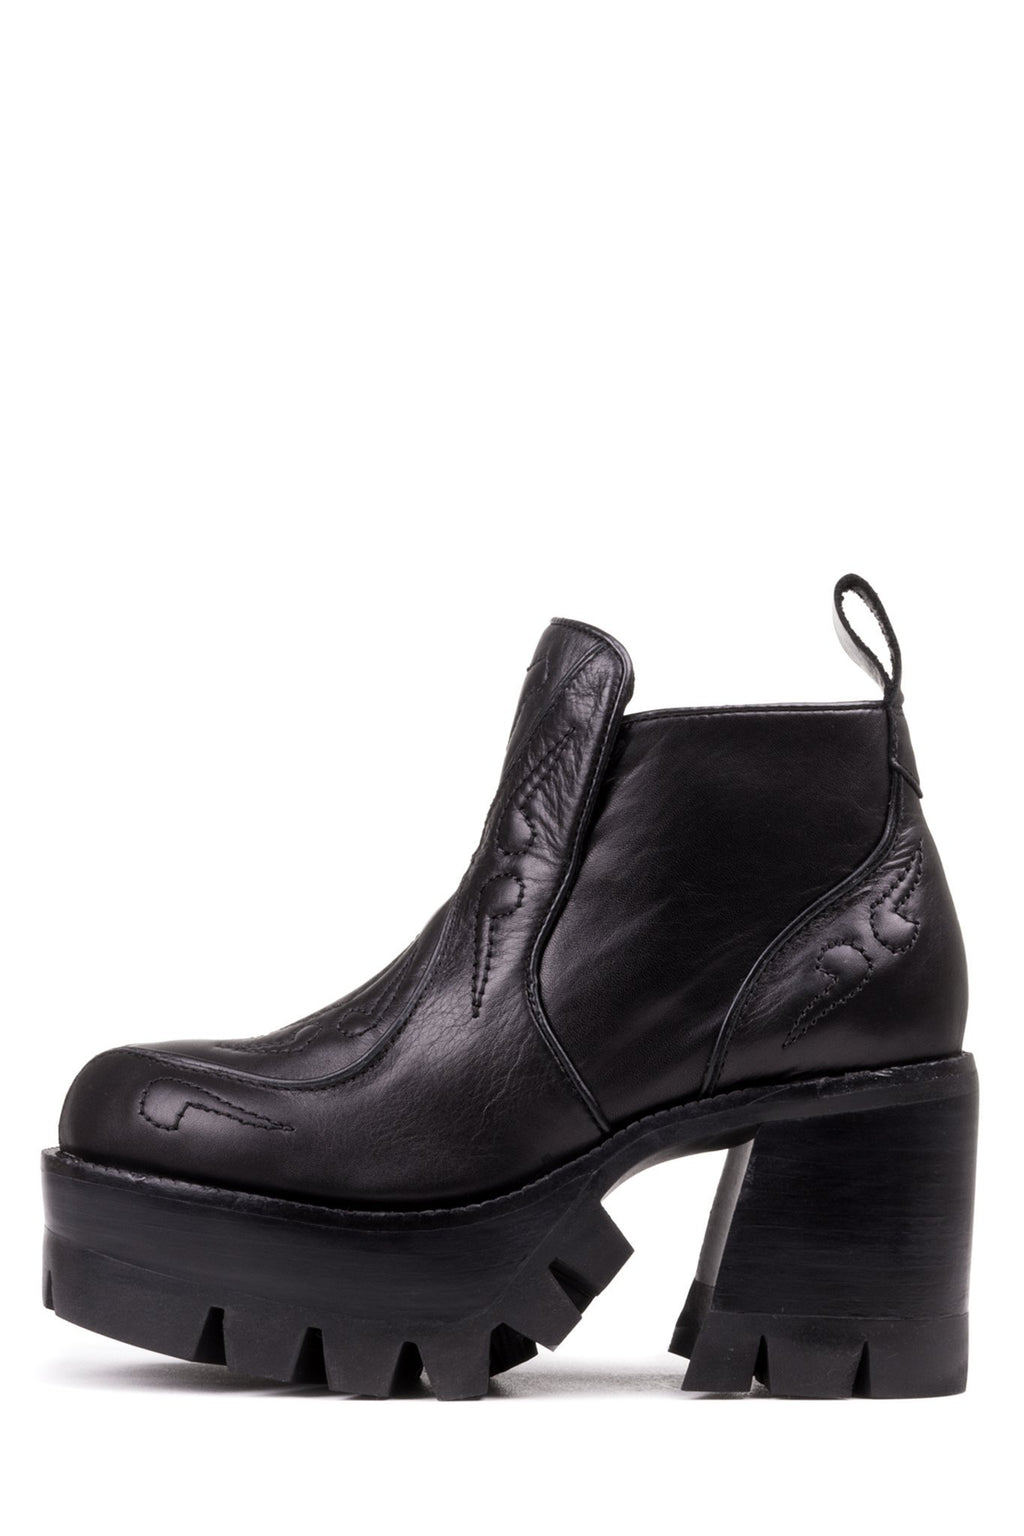 DROPTOP - Jeffrey Campbell